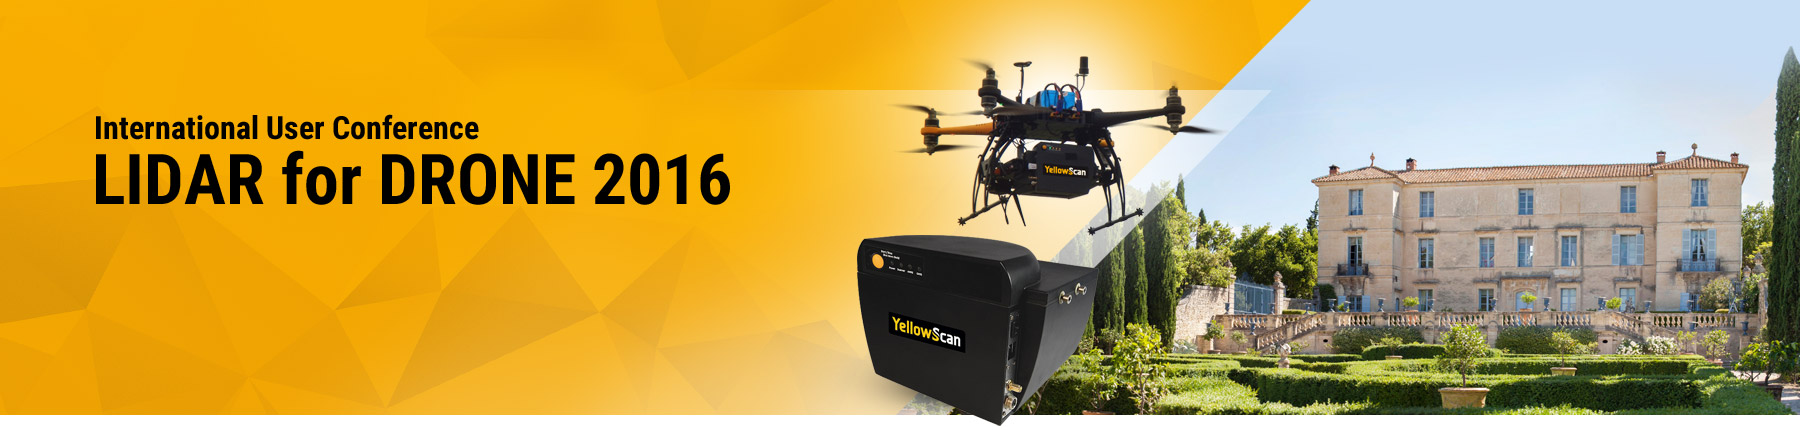 LIDAR for Drone - International YellowScan User Conference 2016